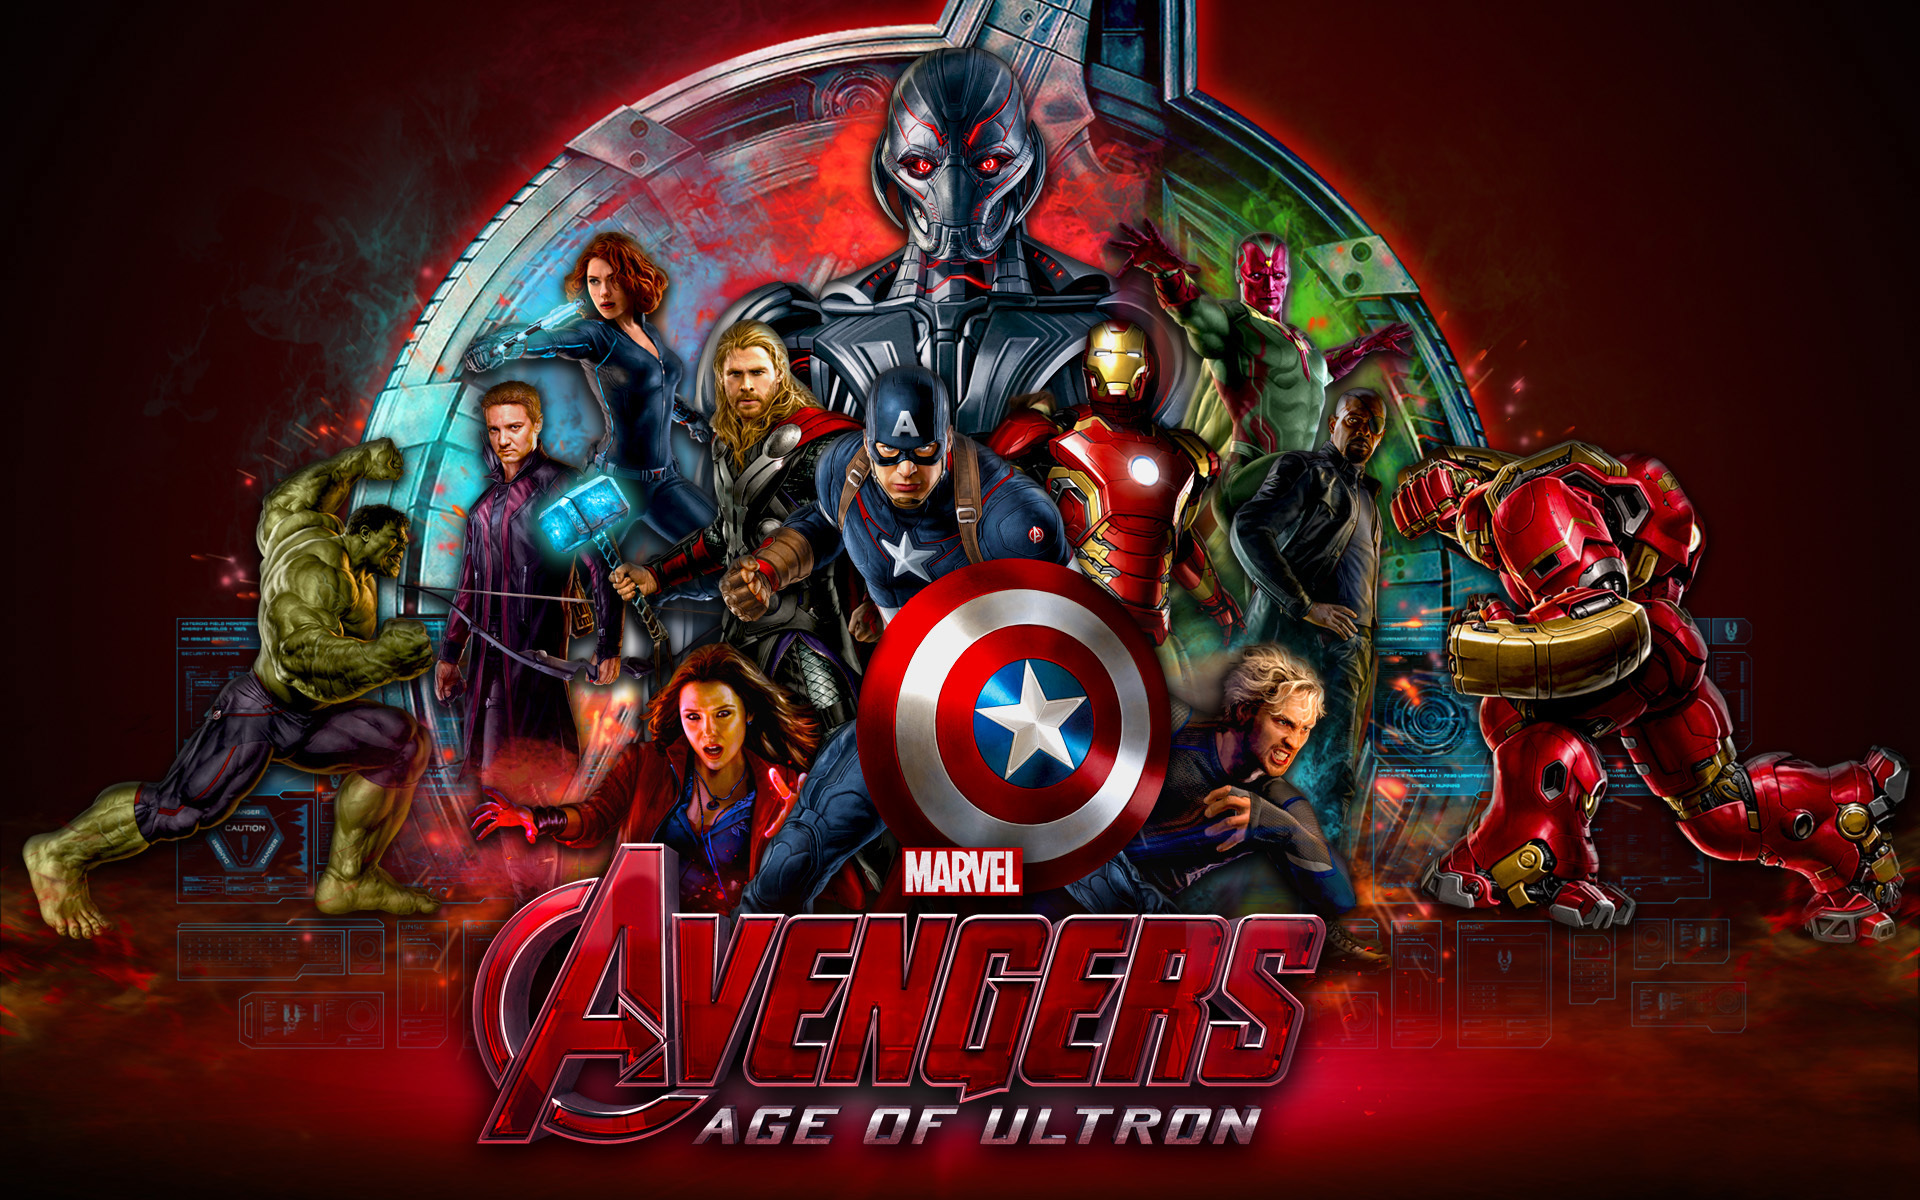 Marvel Studios Avengers Age Of Ultron 2015 Desktop 1920x1200